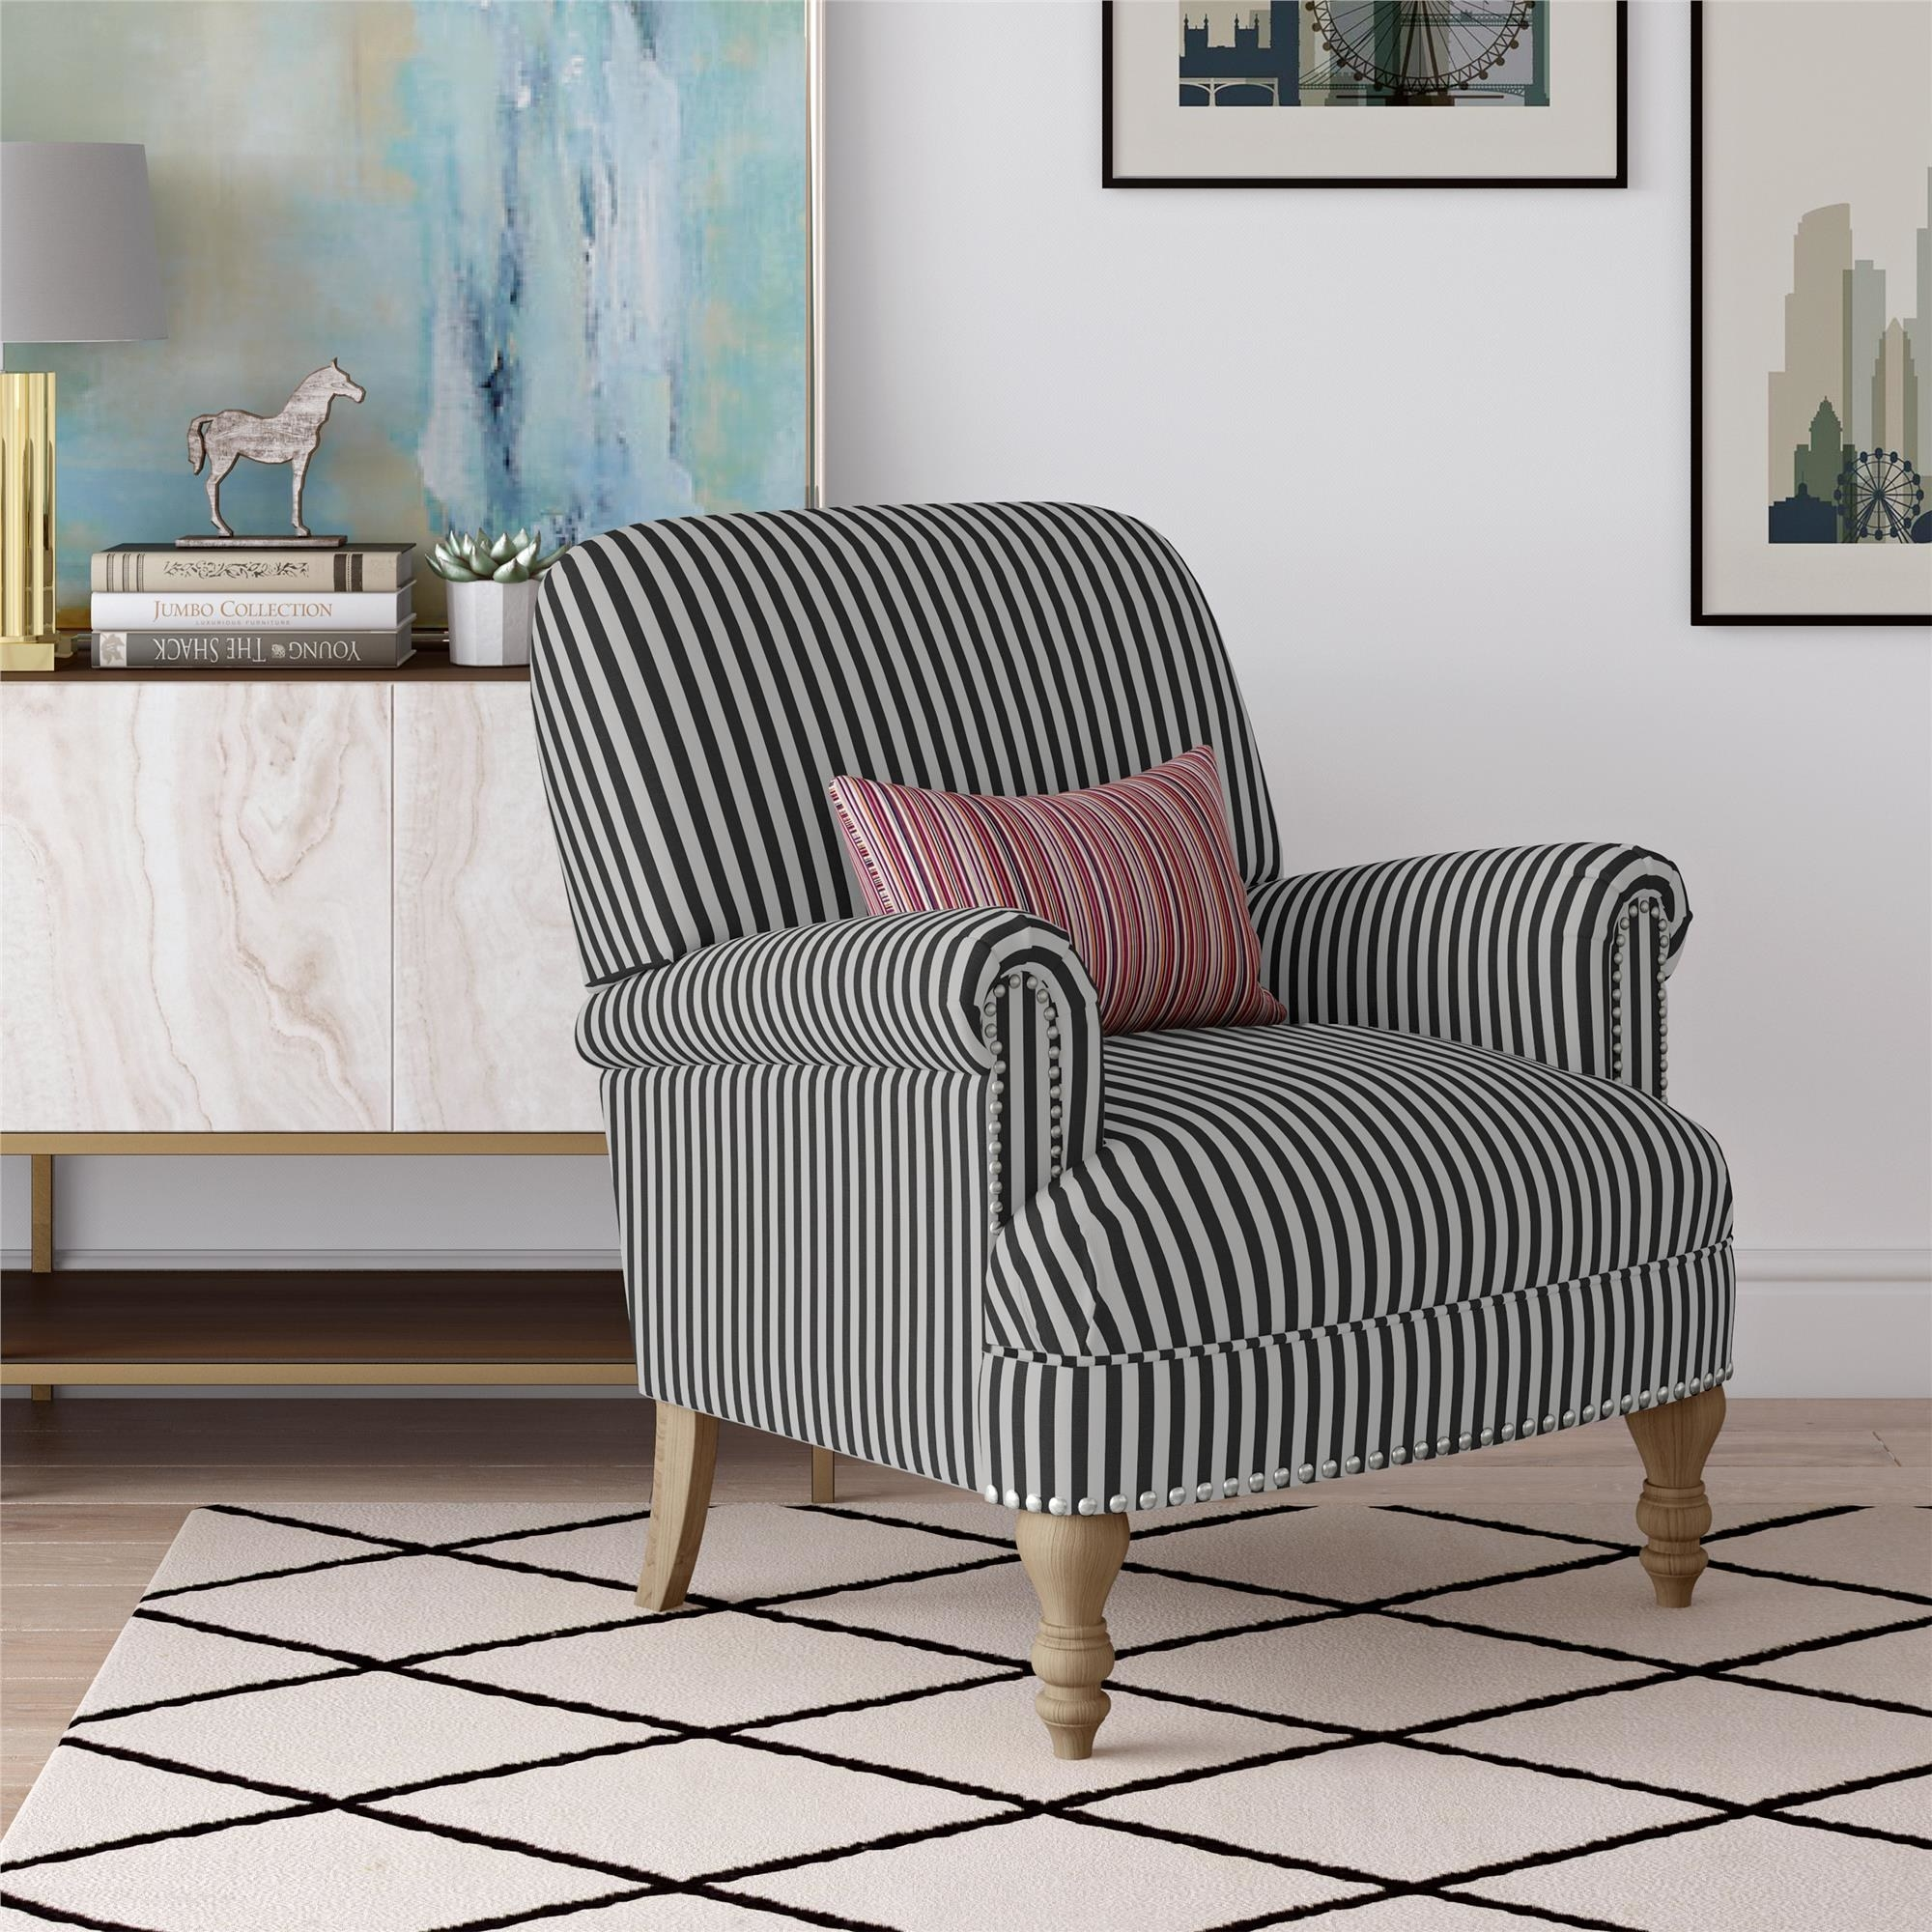 The black and white striped chair in a living room